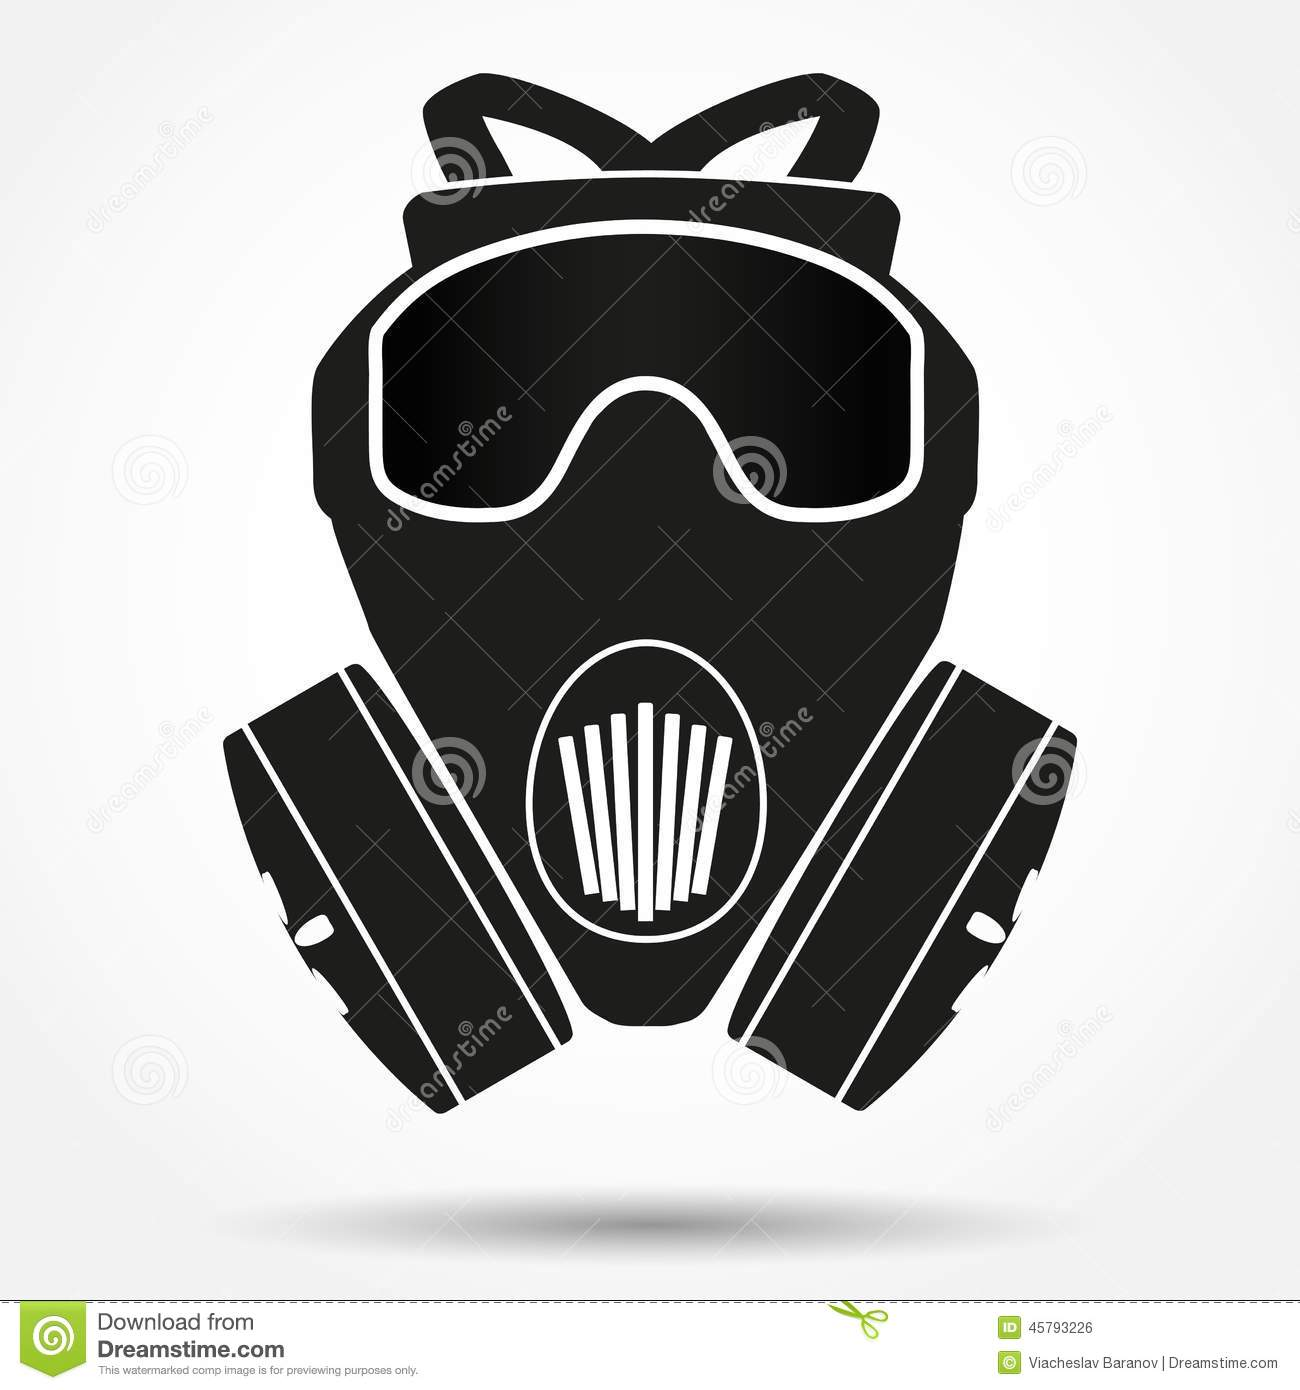 Respirator Stock Illustrations.